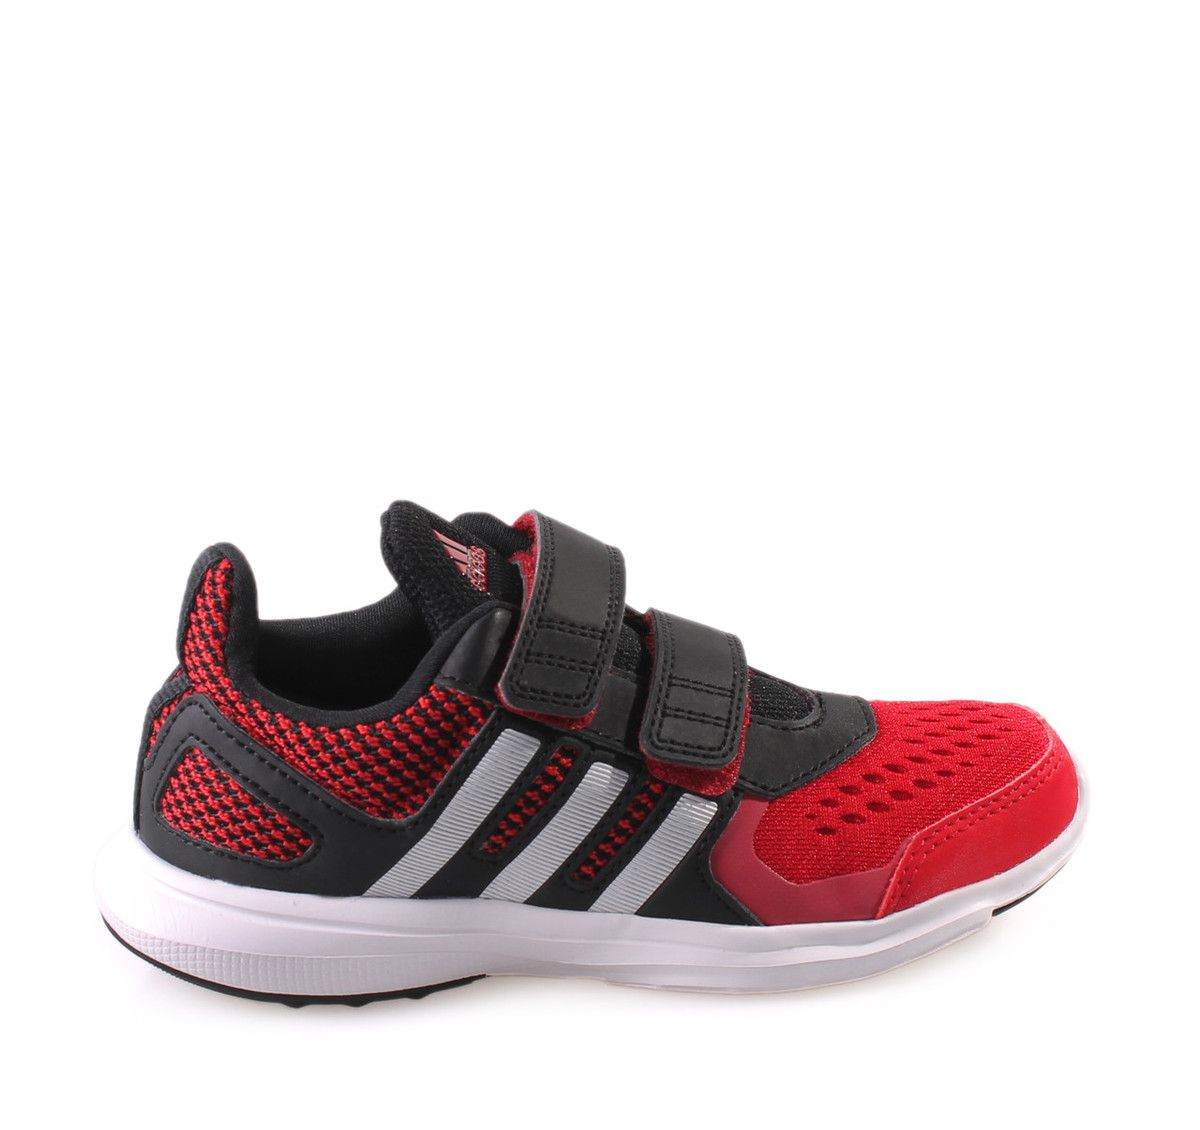 1ddb5cceda HYPERFAST ADIDAS Red Sneakers for Boys with Scratches. Παιδικά αγορίστικα  κόκκινα αθλητικά παπούτσια για αγόρια.